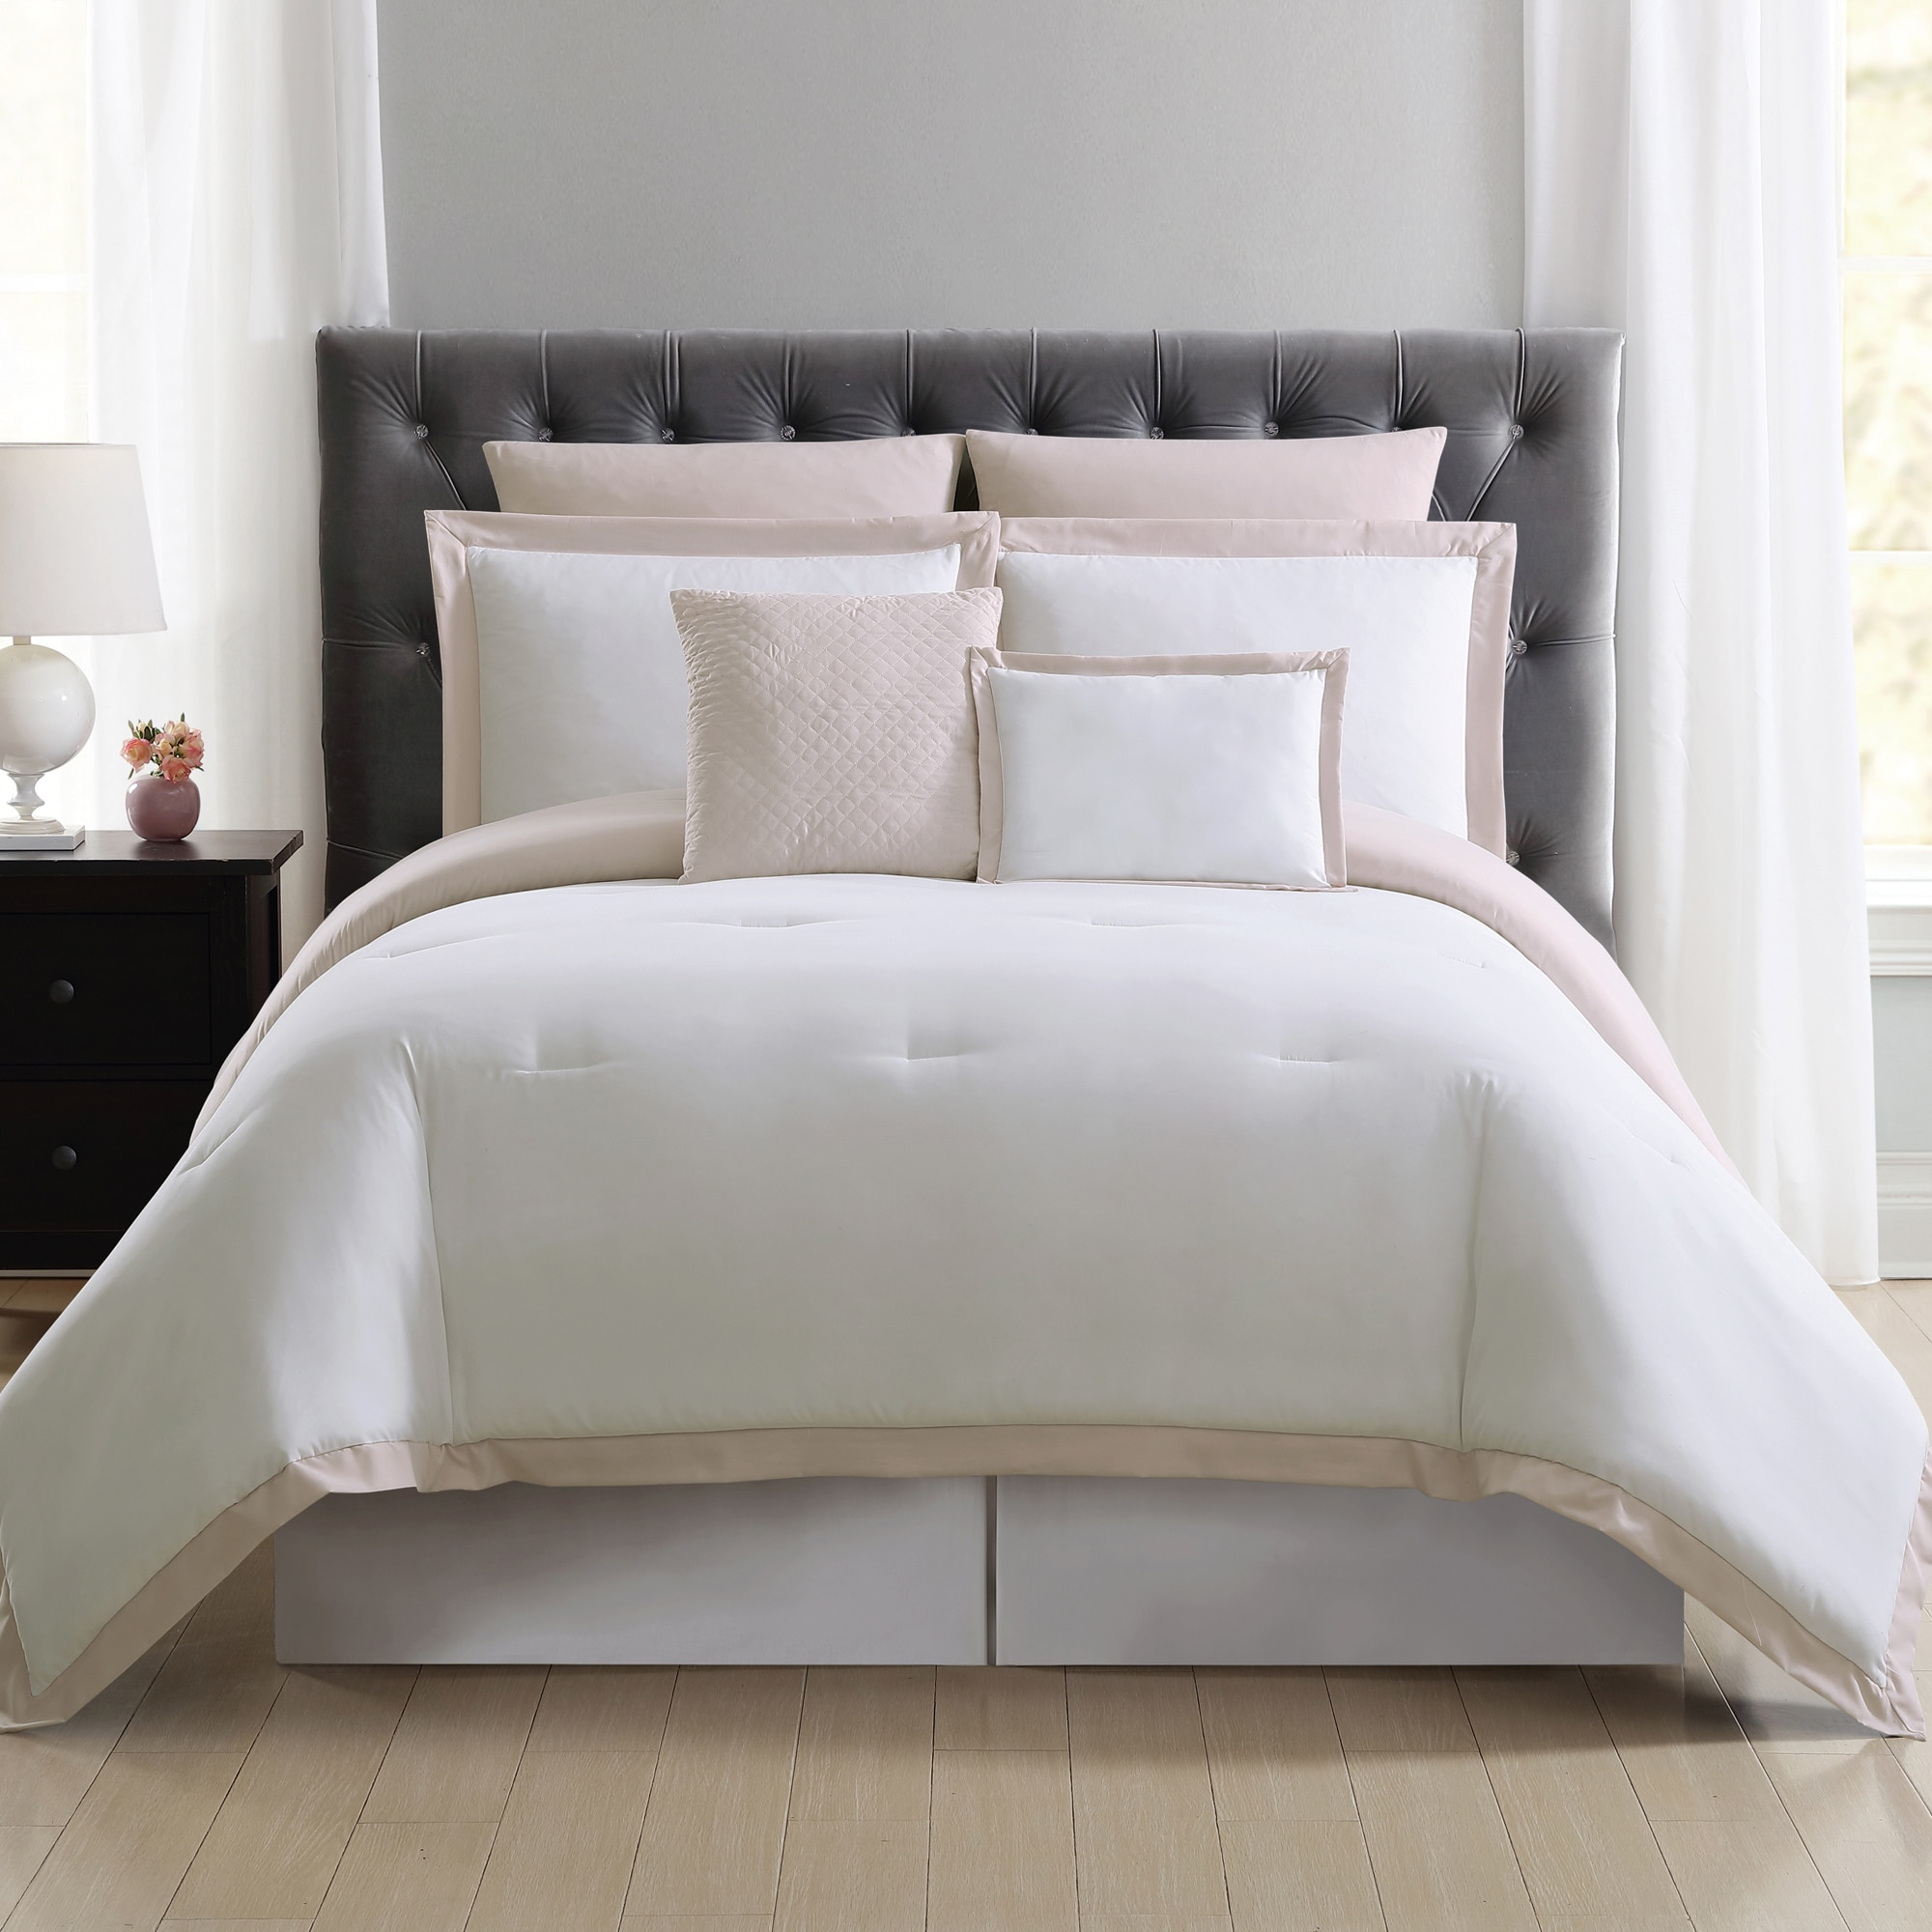 etc comforter bigstock choose down to organic hotel blog your how pillows comforters collection post sheets